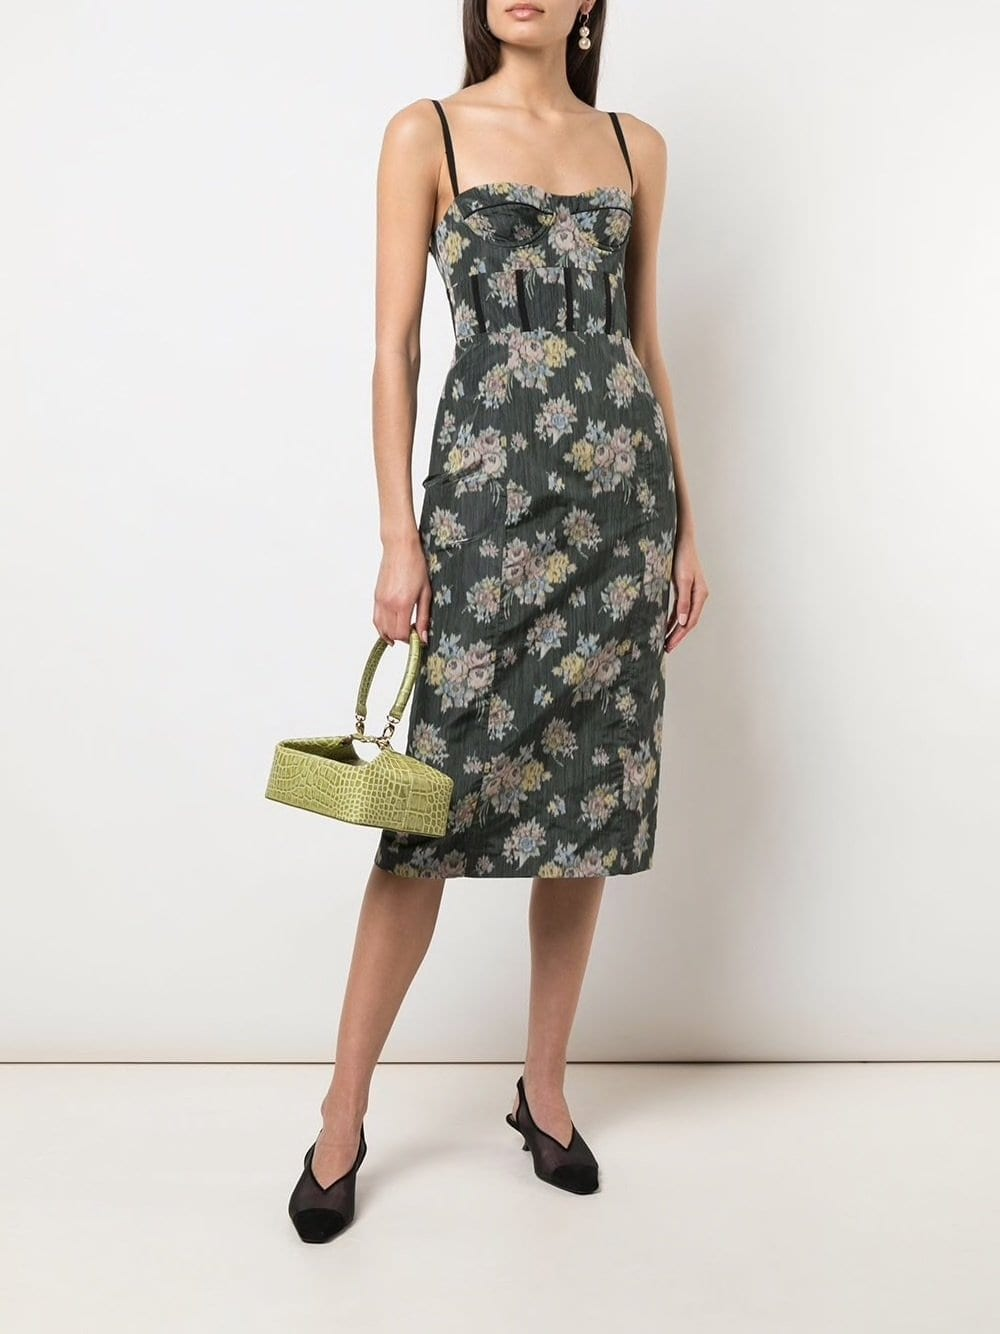 BROCK COLLECTION Bustier Pencil Floral Midi Dress